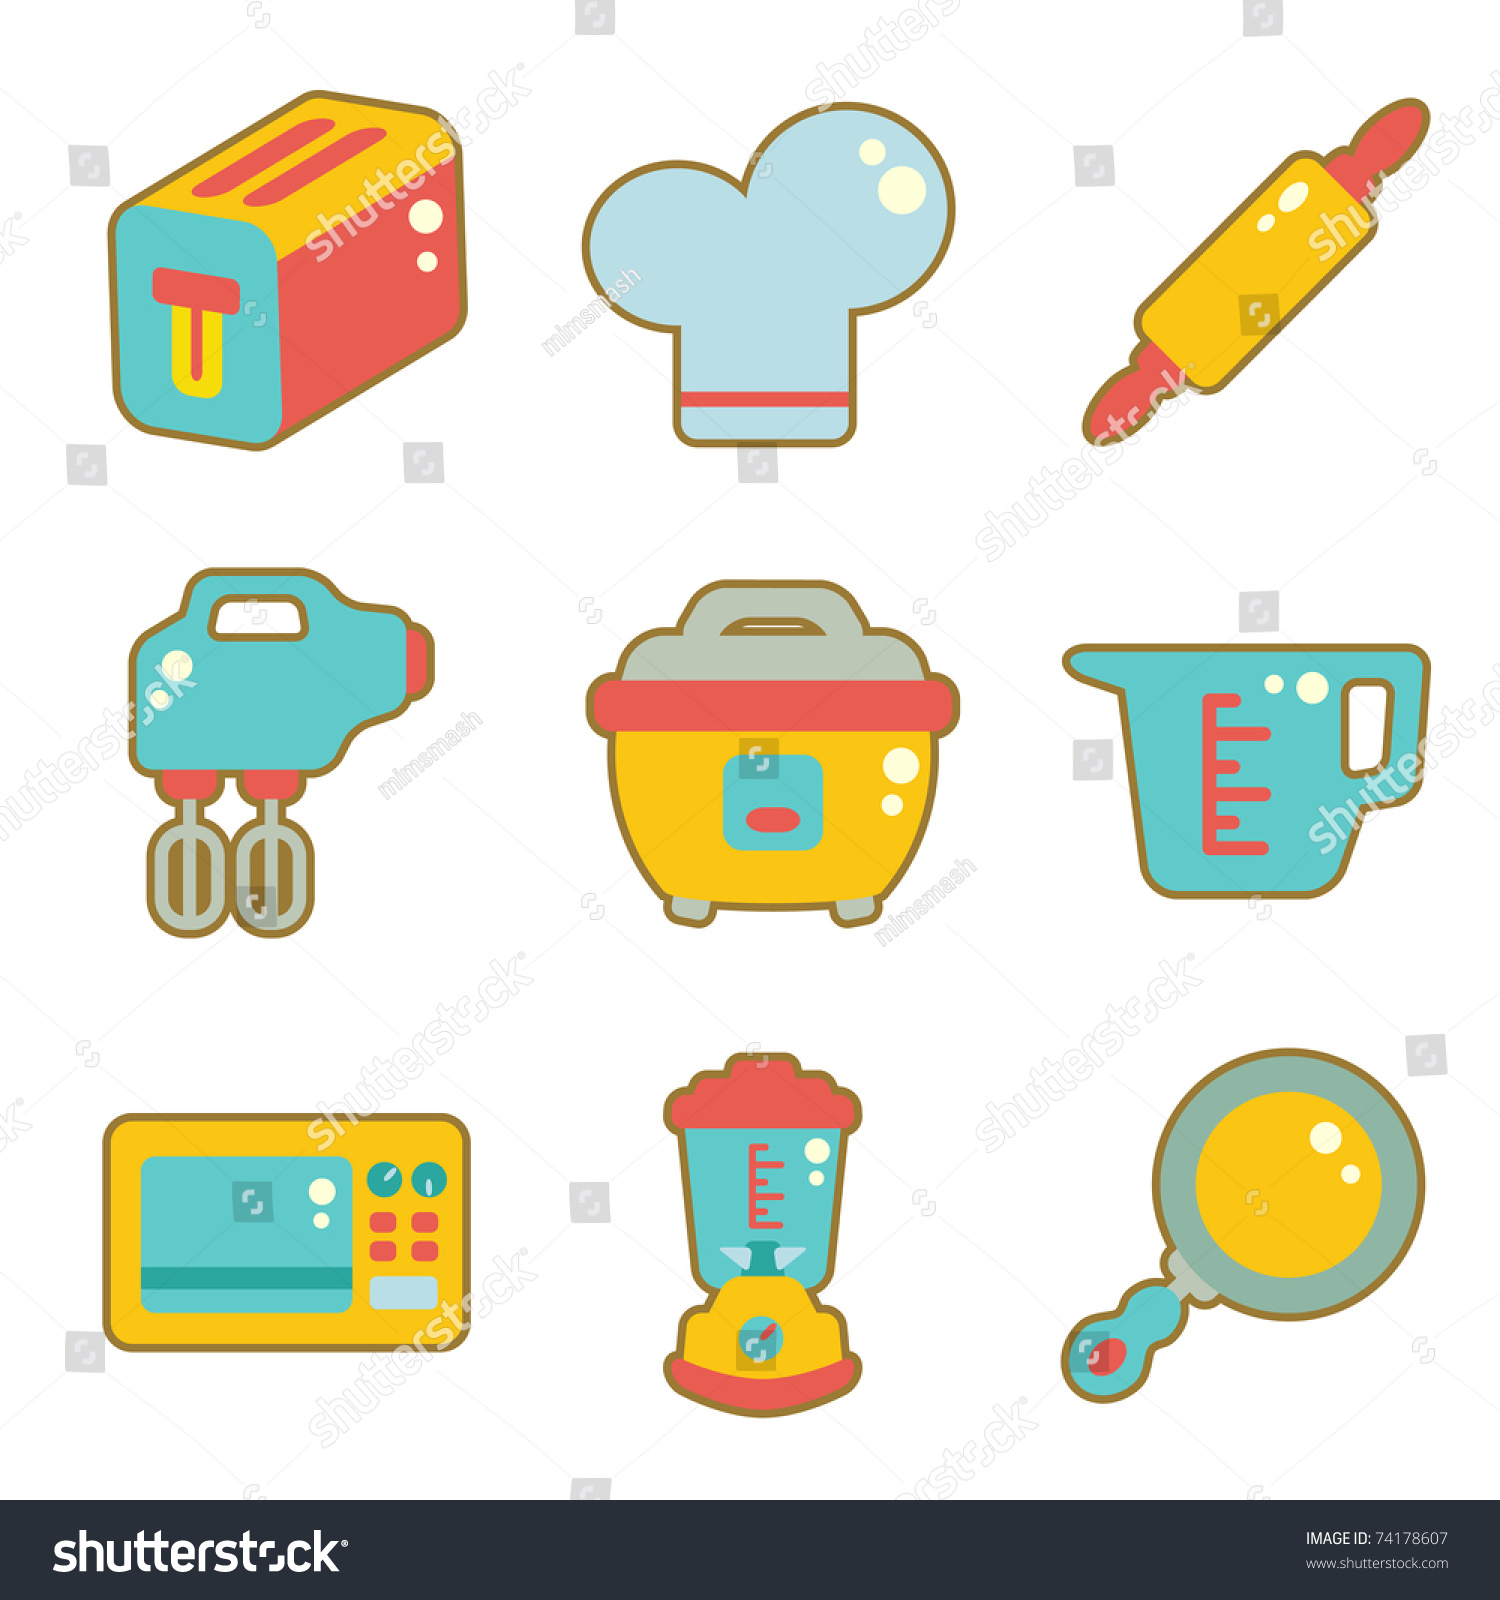 Uncategorized Cute Kitchen Appliances cute icon set kitchen appliances stock vector 74178607 shutterstock appliances